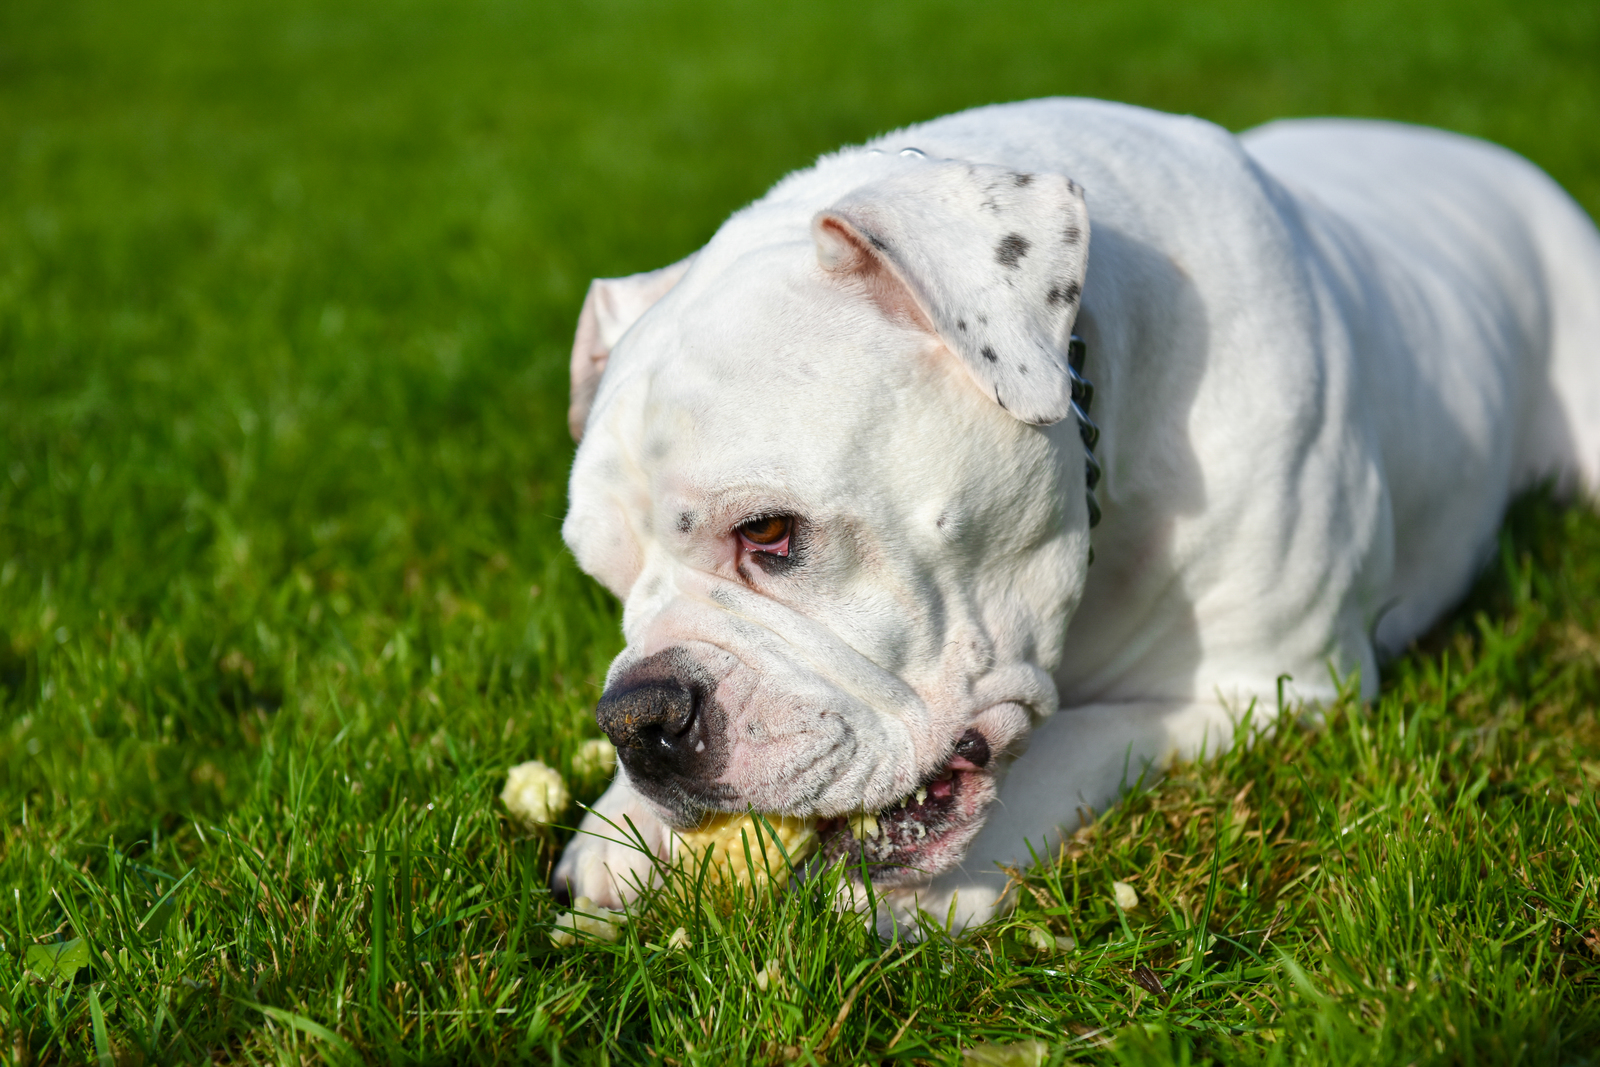 White american bulldog is eating corn on the grass